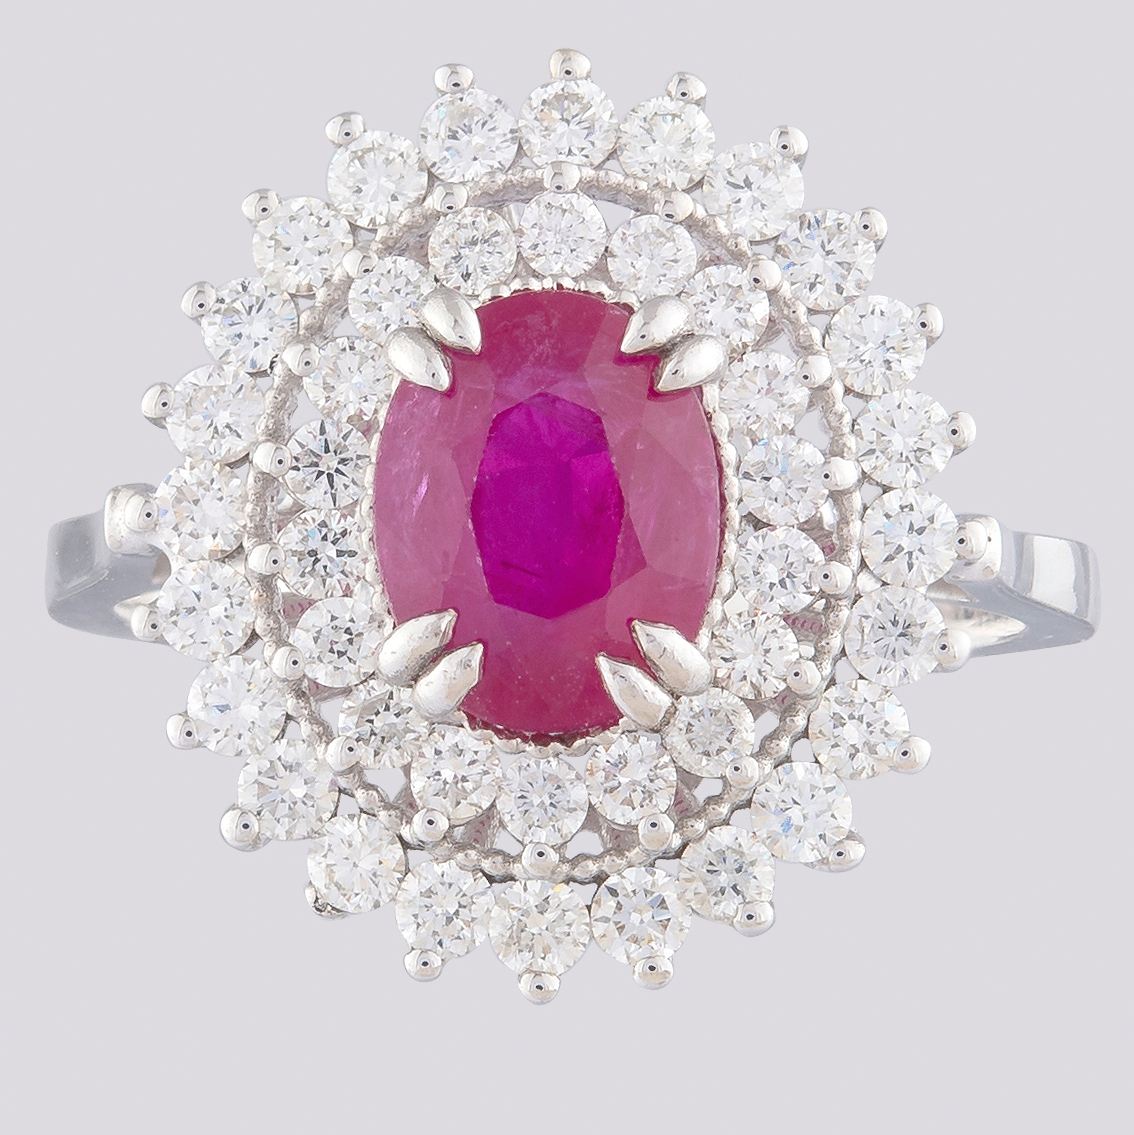 14K White Gold Cluster Ring 1.90 Ct. Natural Ruby - 1.00 Ct. Diamond - Image 3 of 4